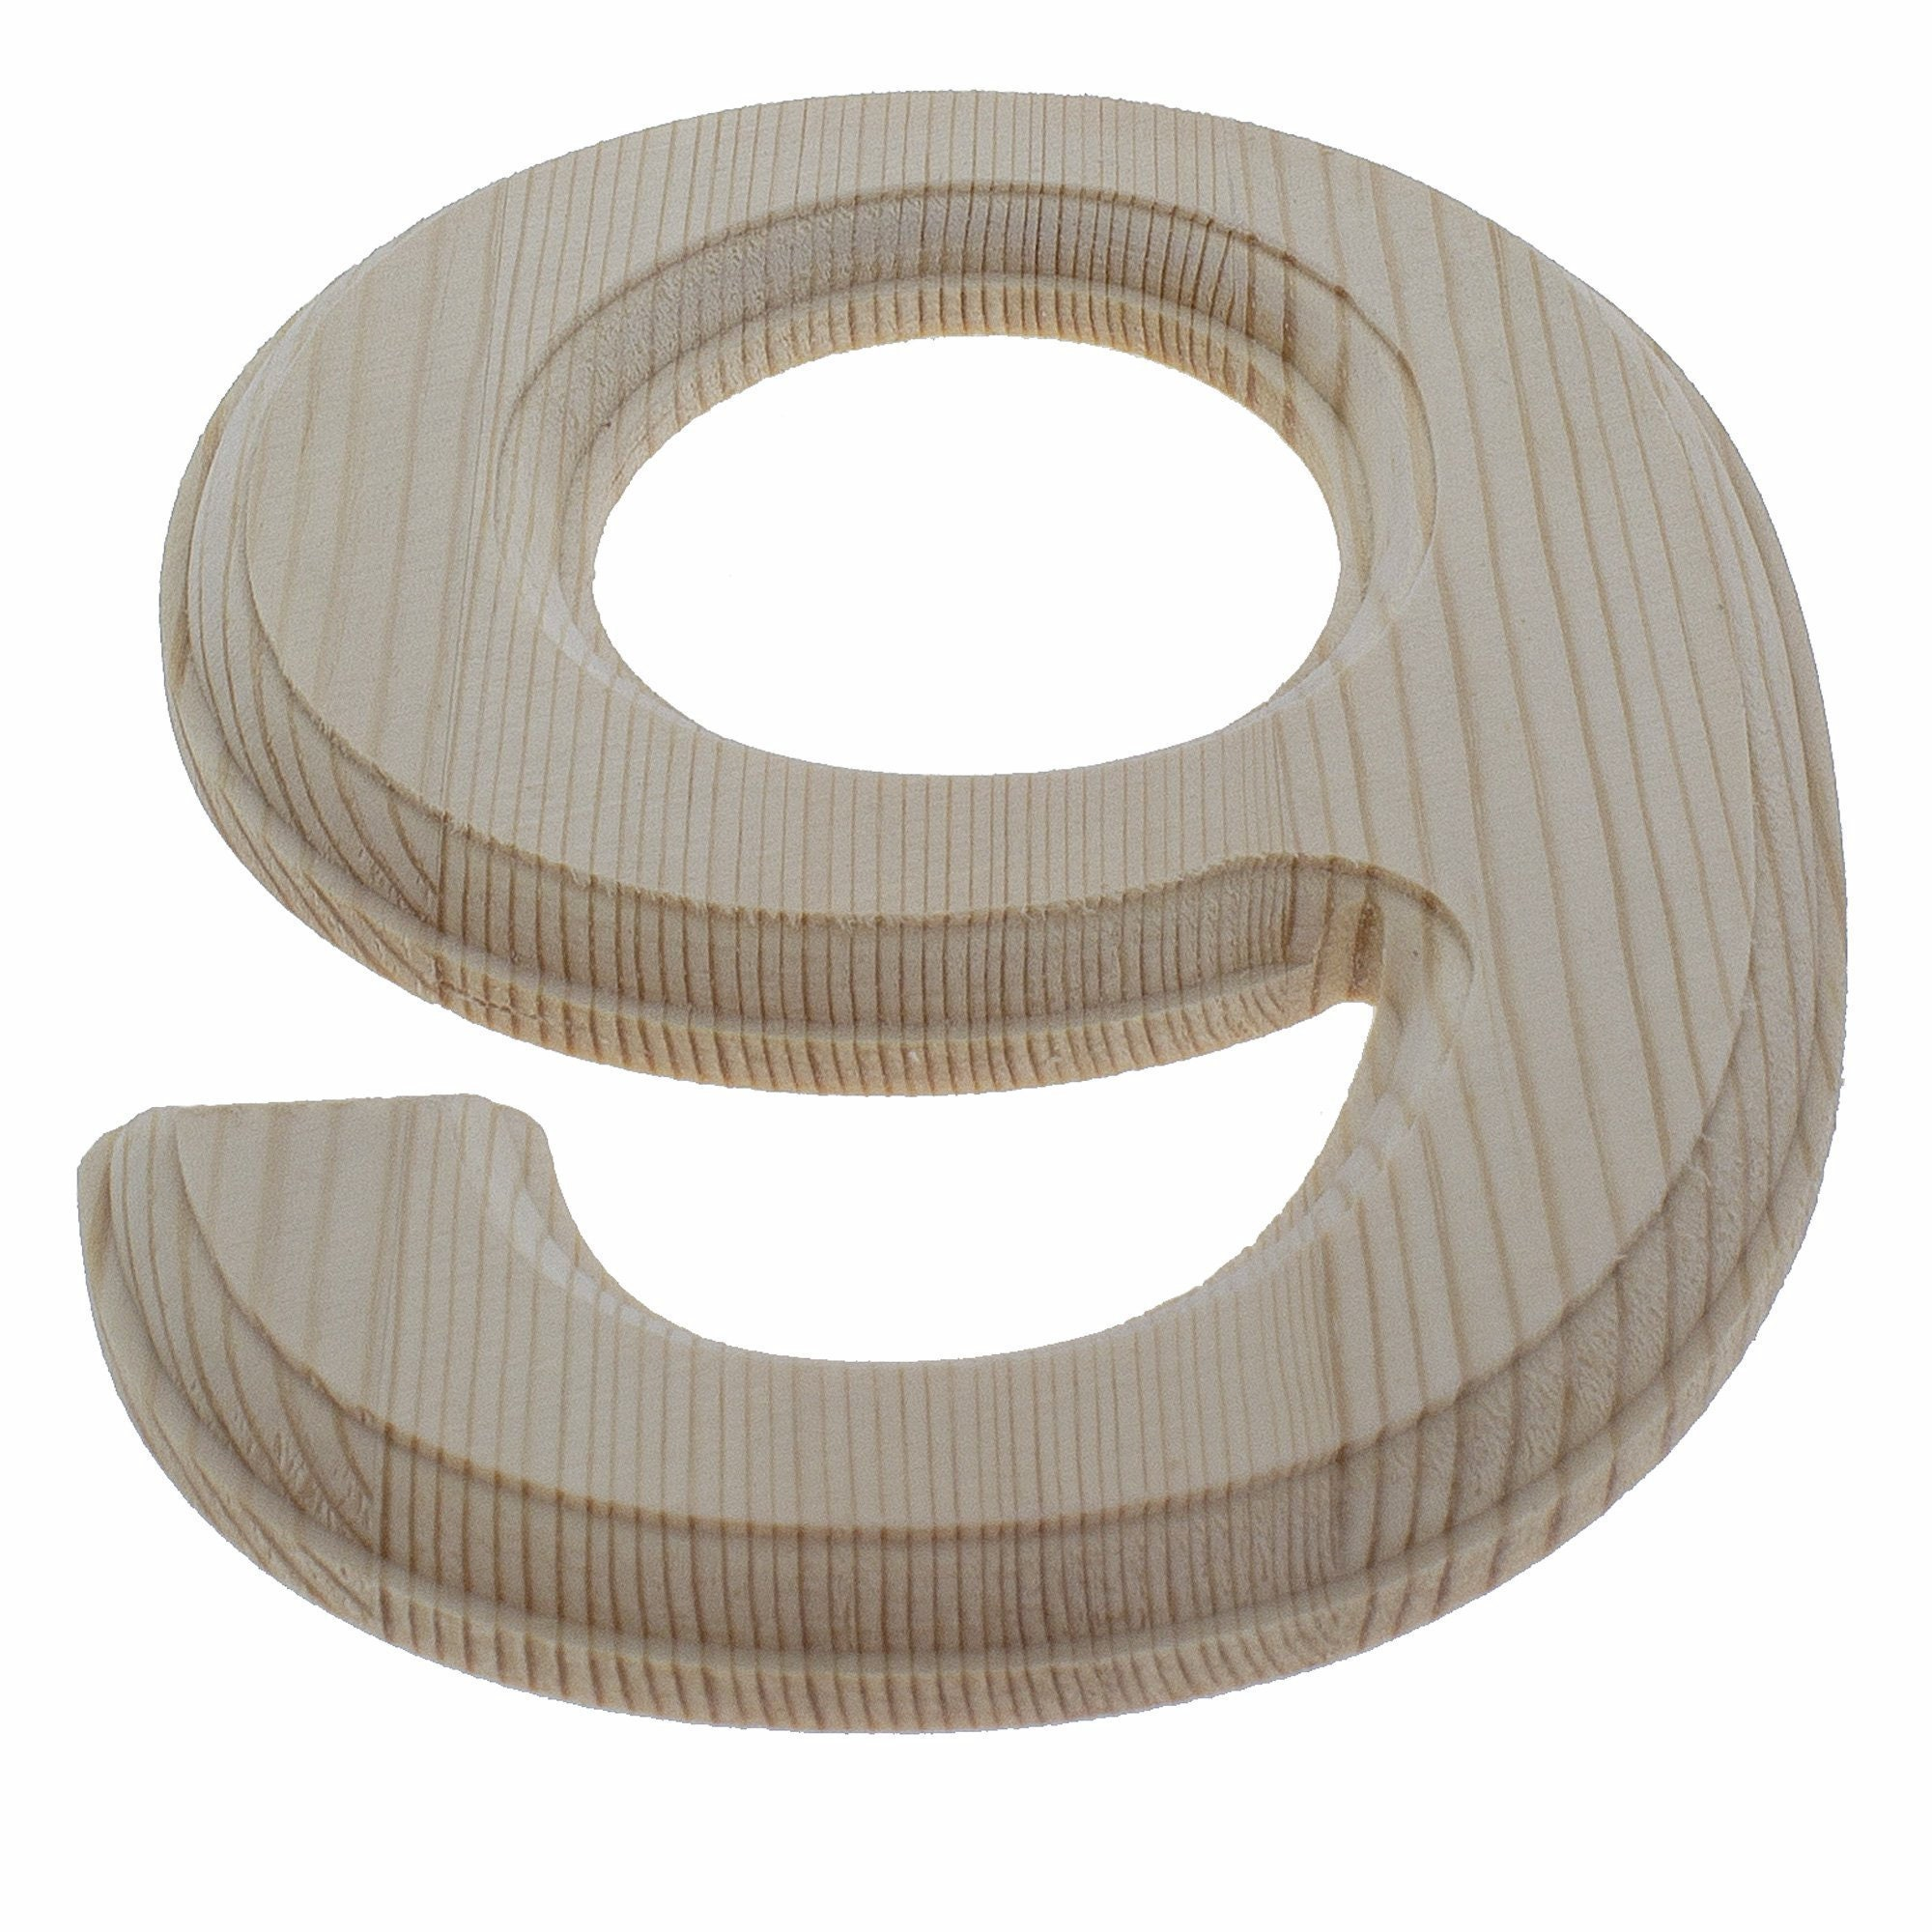 Unfinished Wooden Number 0 6.25 Inches